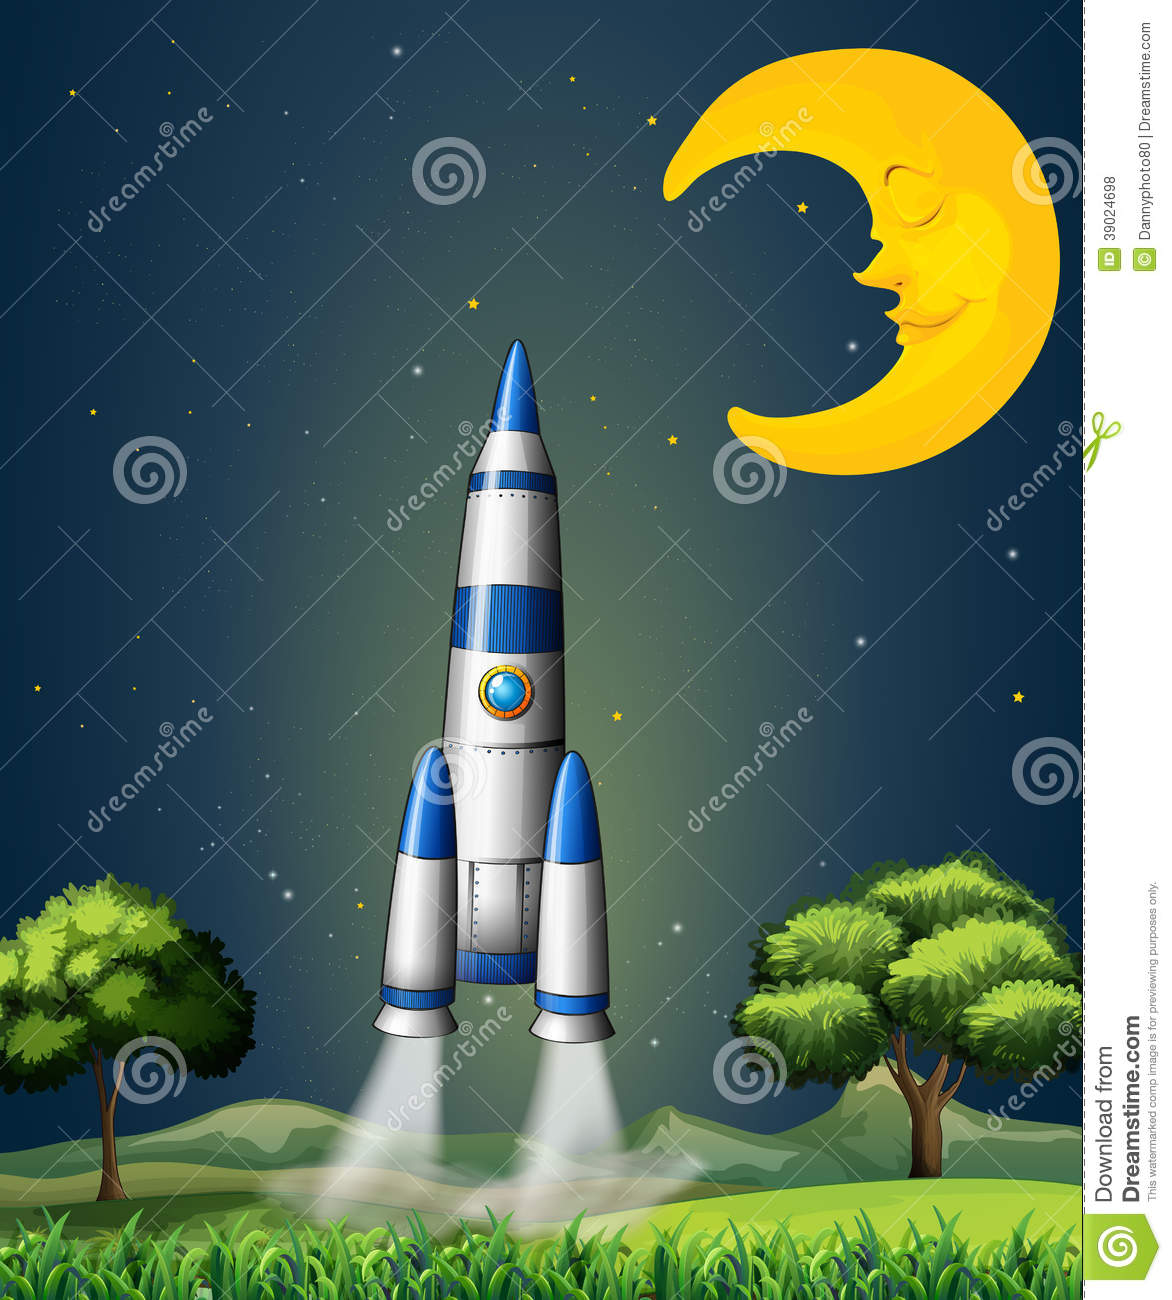 Rockets To The Moon: A Rocket Going To The Sky With A Sleeping Moon Stock